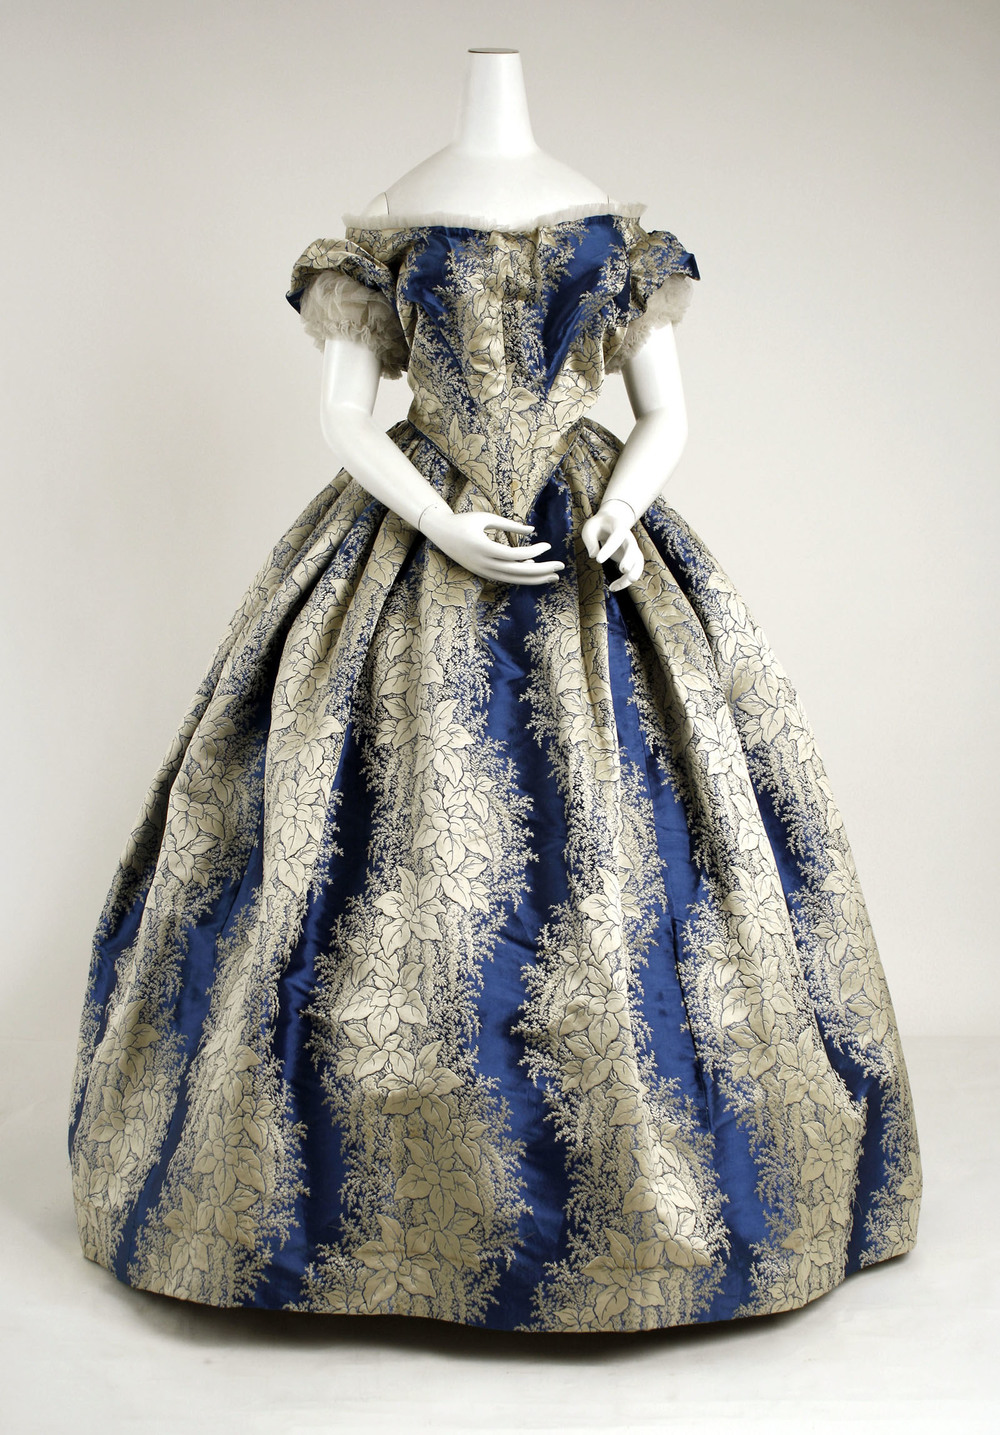 Evening dress, circa 1855-58, The Metropolitan Museum of Art, New York